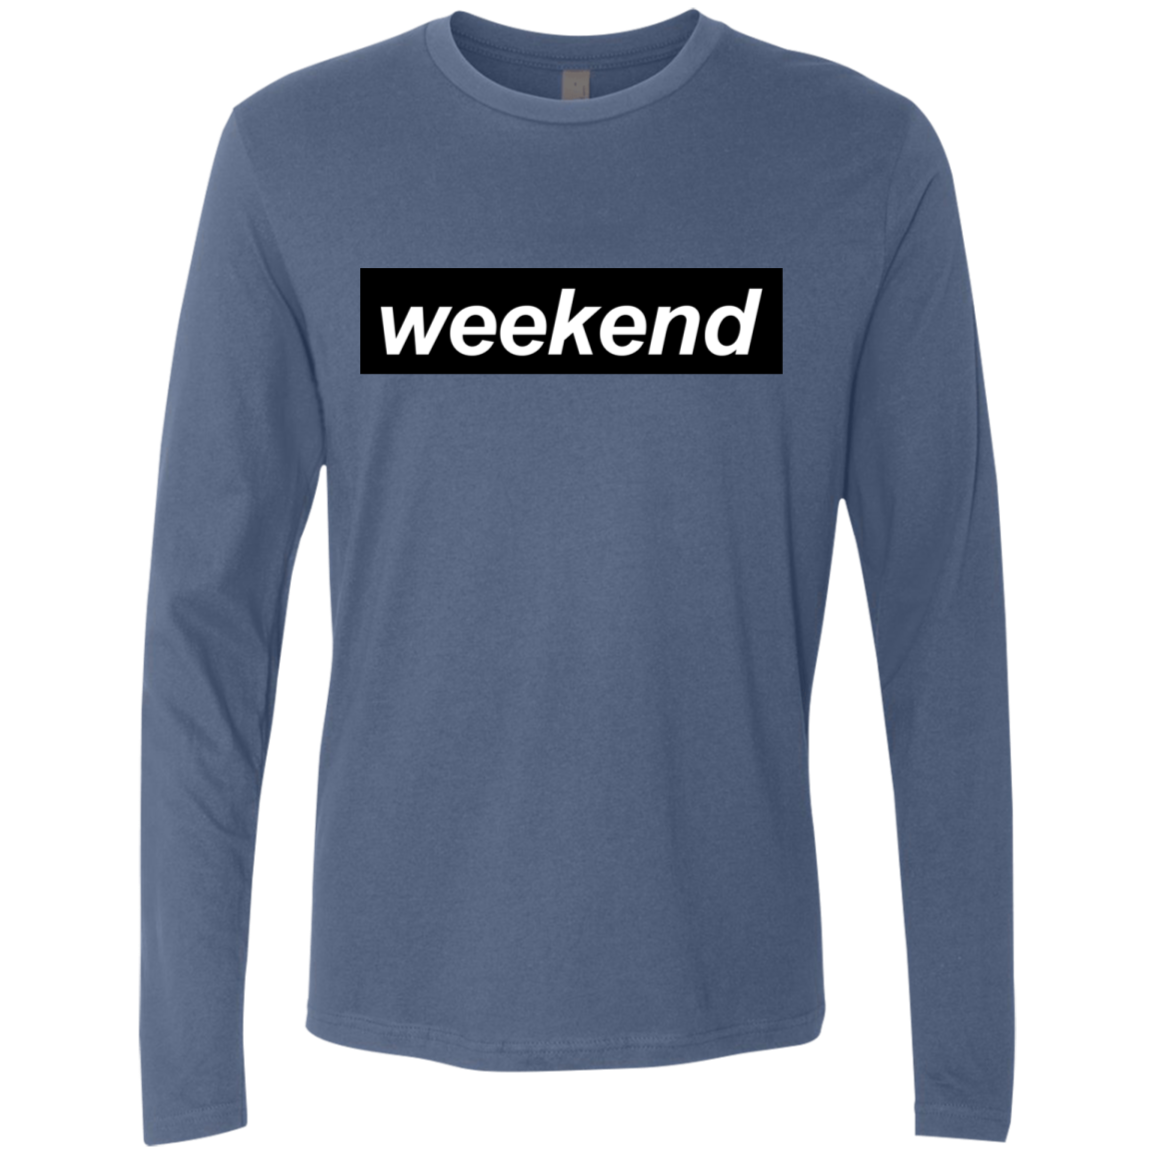 It's the Weekend Men's Long Sleeve Tee - Trendy Tees